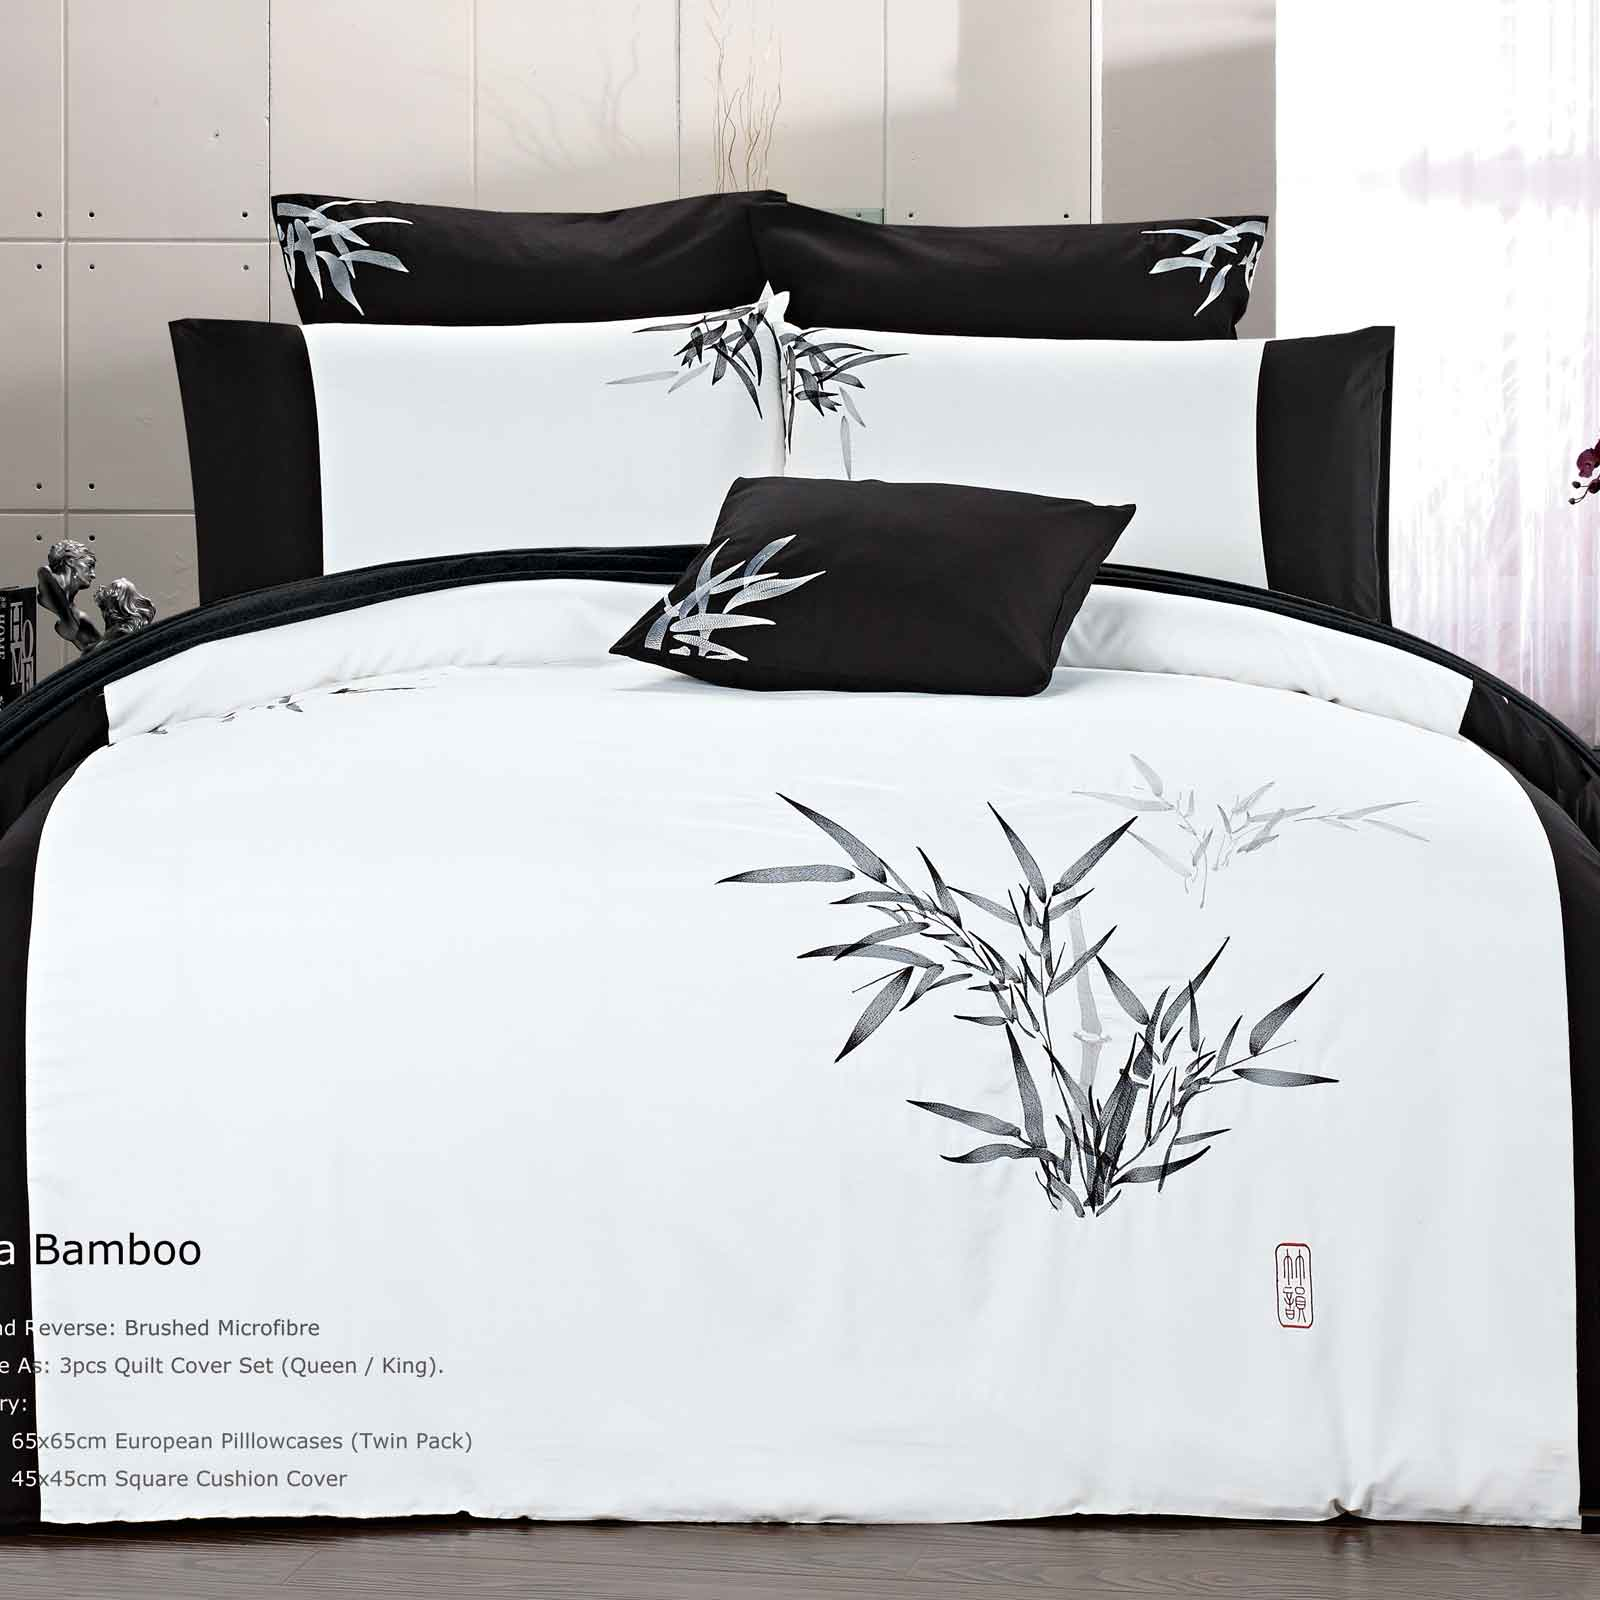 Luxton-Queen-Size-Duvet-Quilt-Cover-Set-Bamboo-Bedding-Set-Bed-Linen-B20010Q